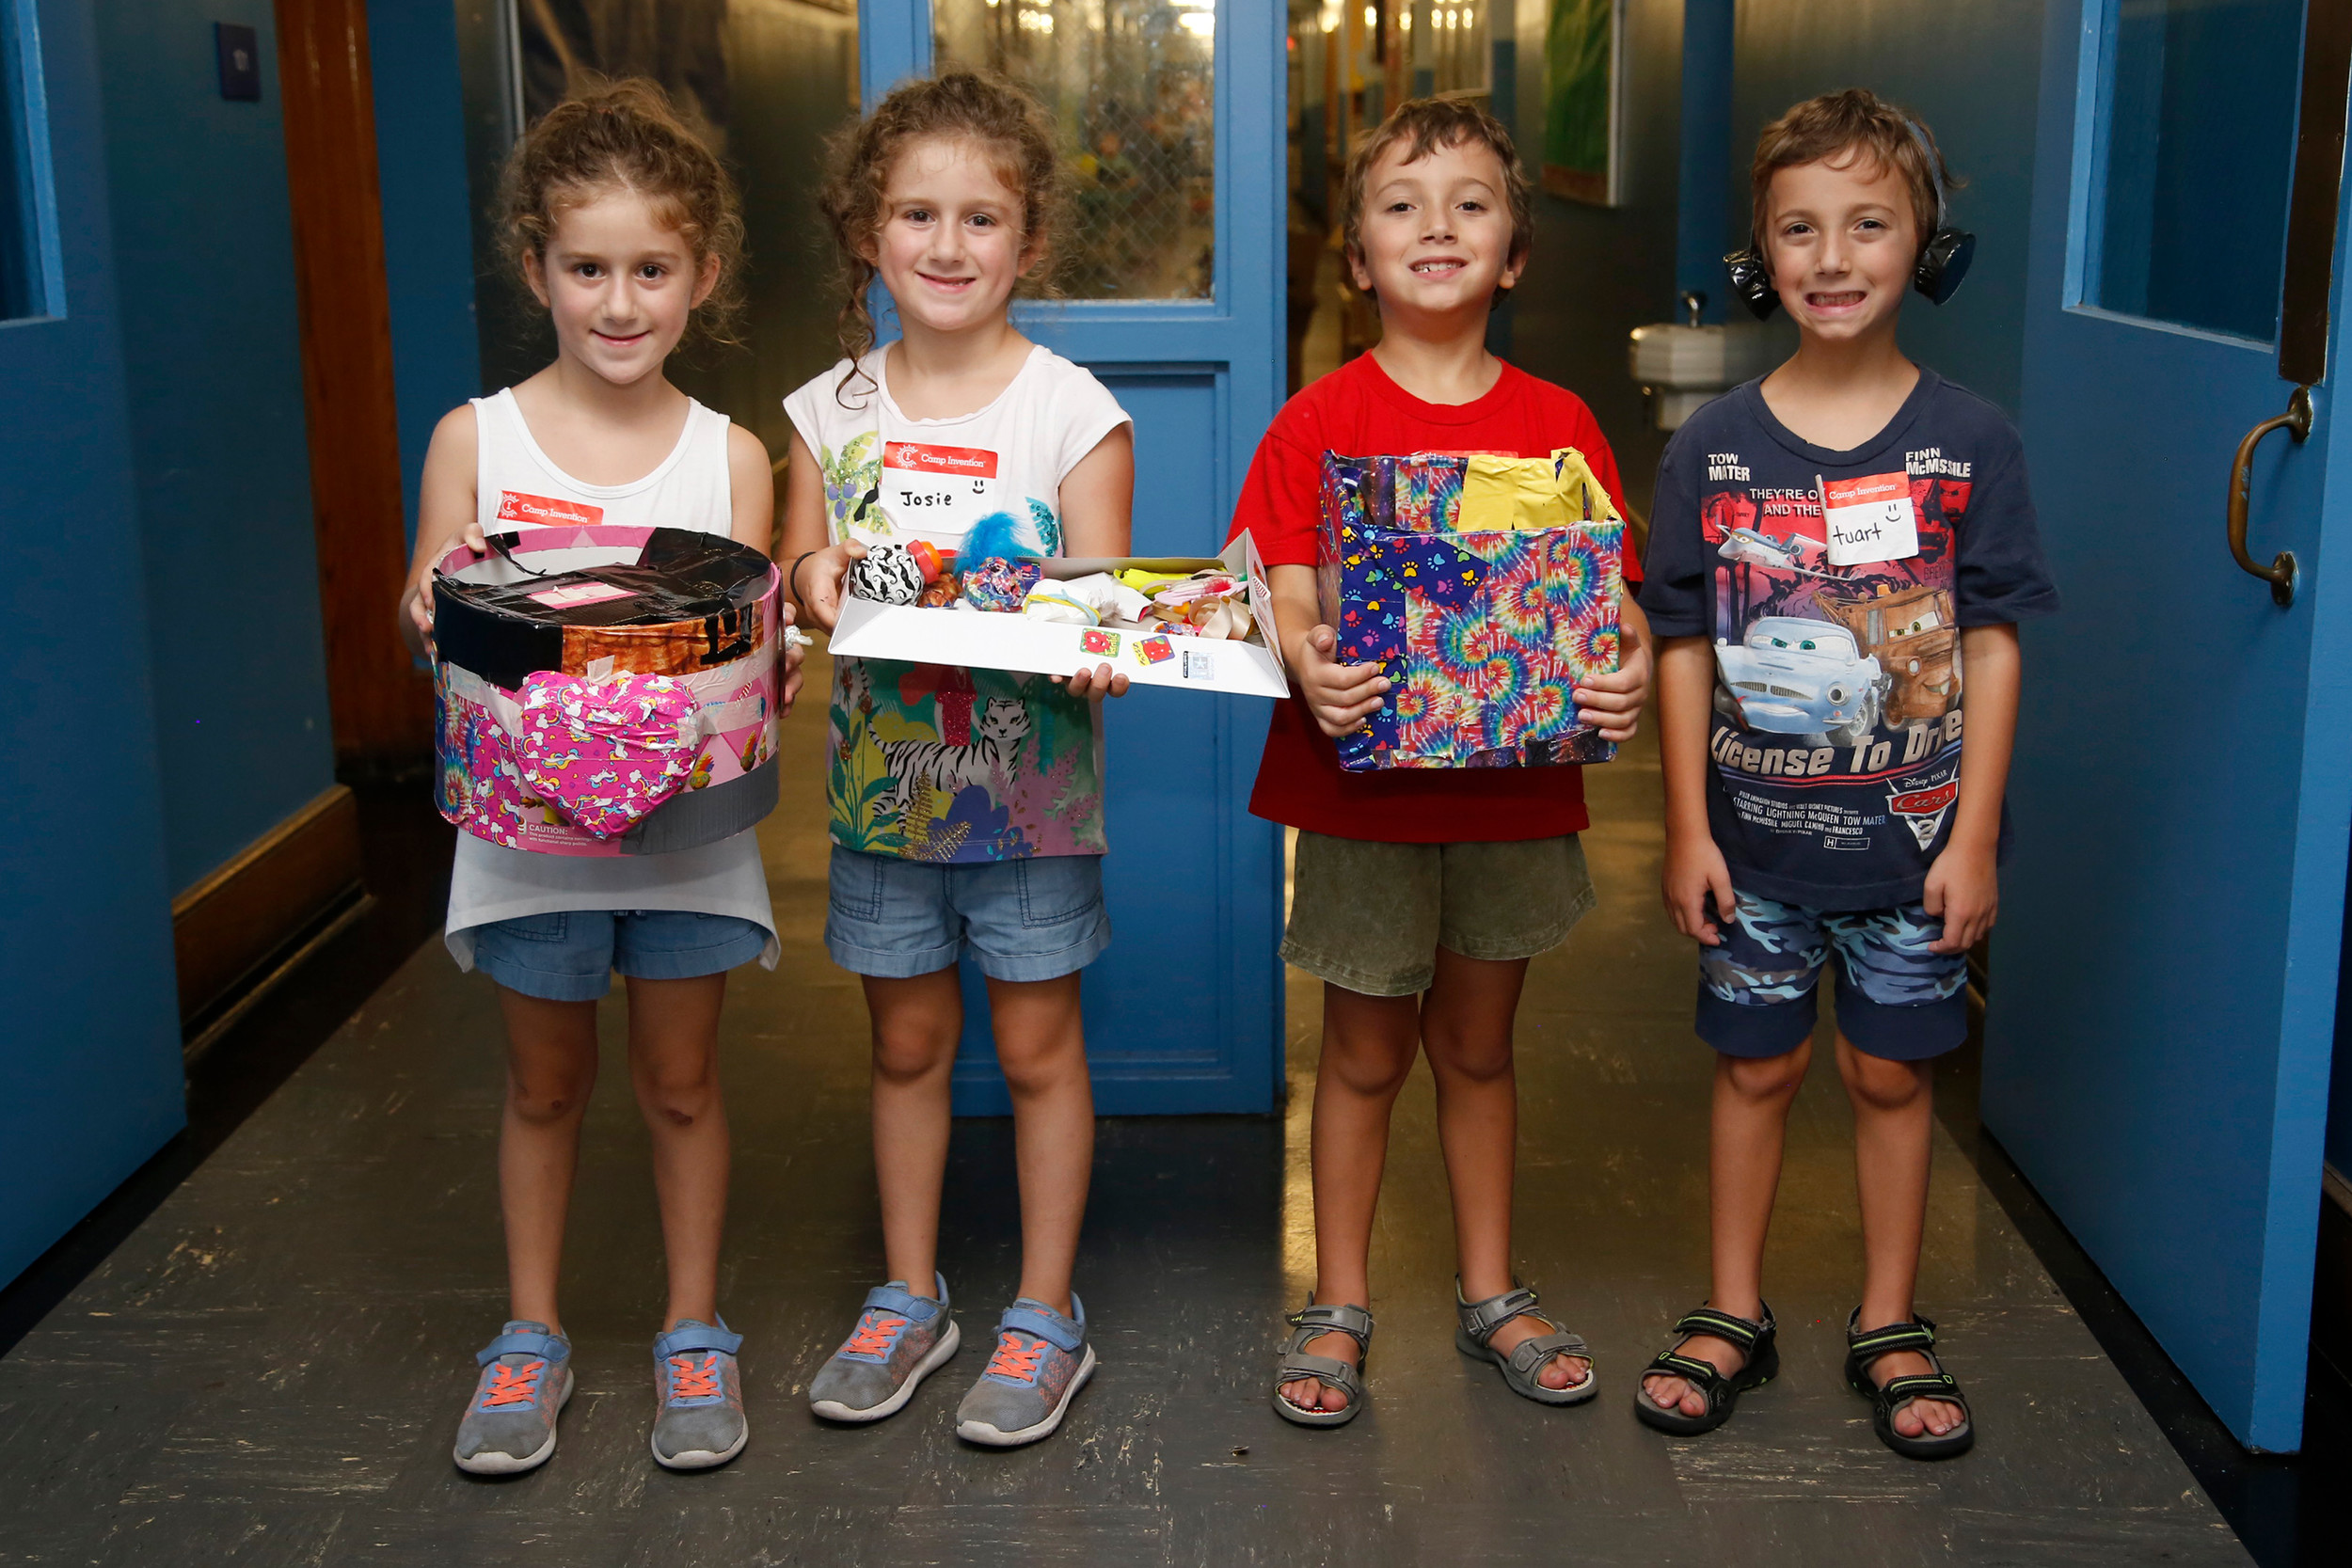 Two sets of twin inventors, Viviana and Josephine Ghezzi and Austin and Stuart Breitman, all entering second grade, showed off their creations.